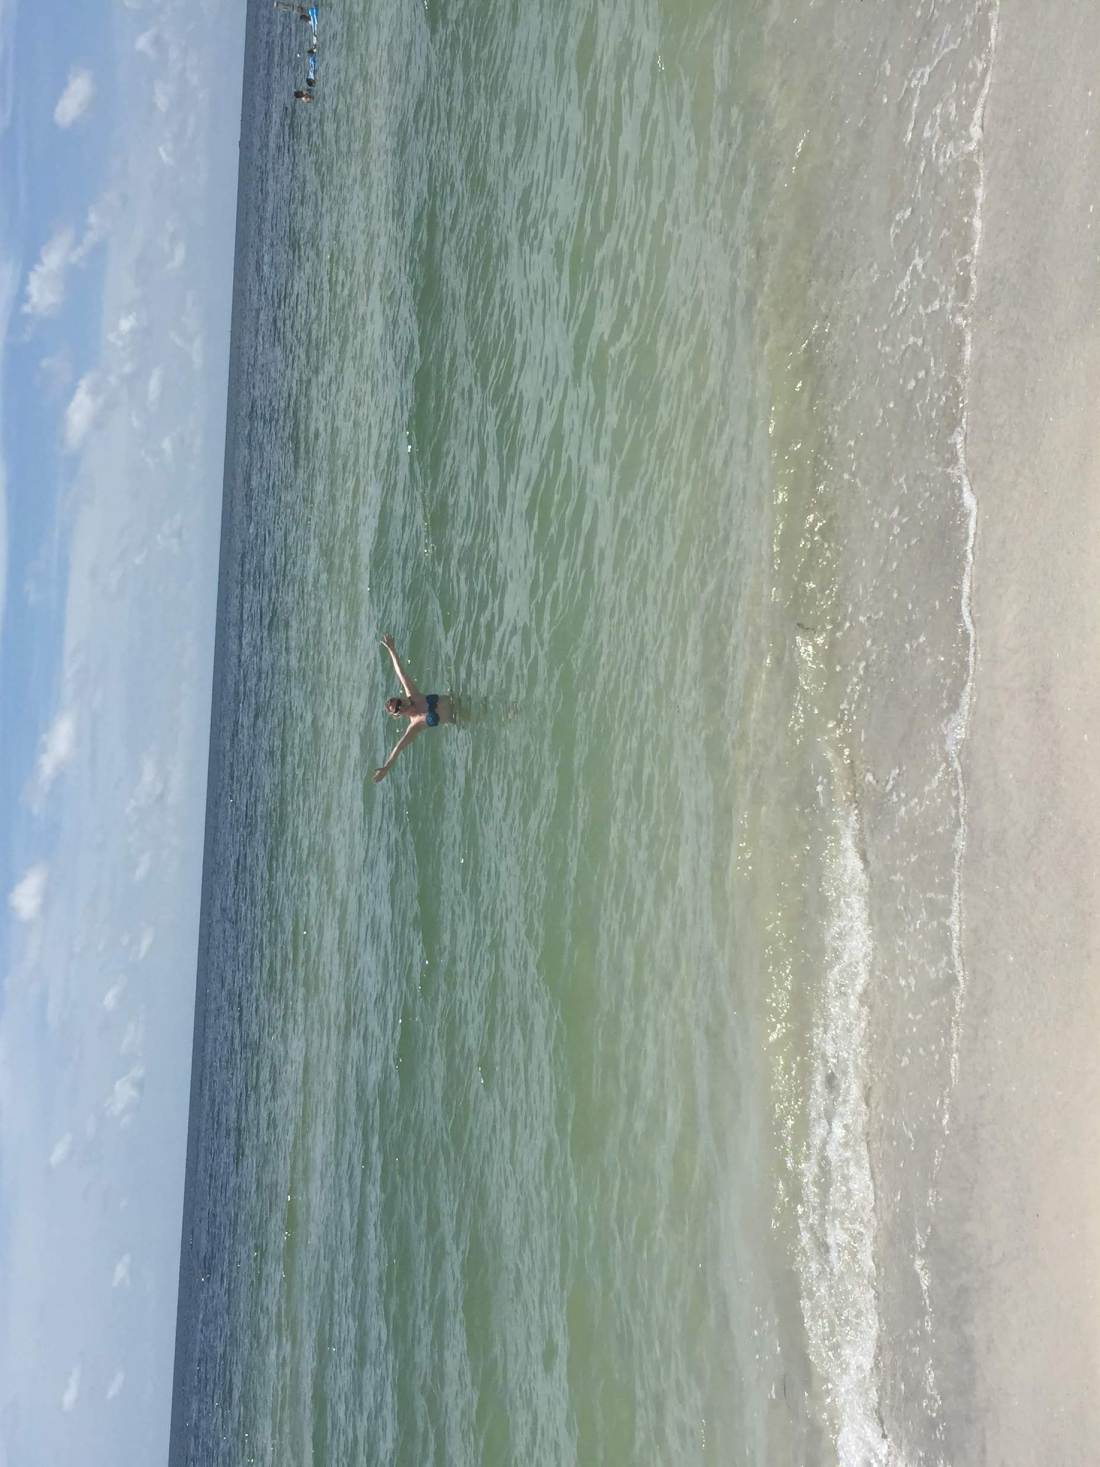 In the ocean of the Gulf of Mexico